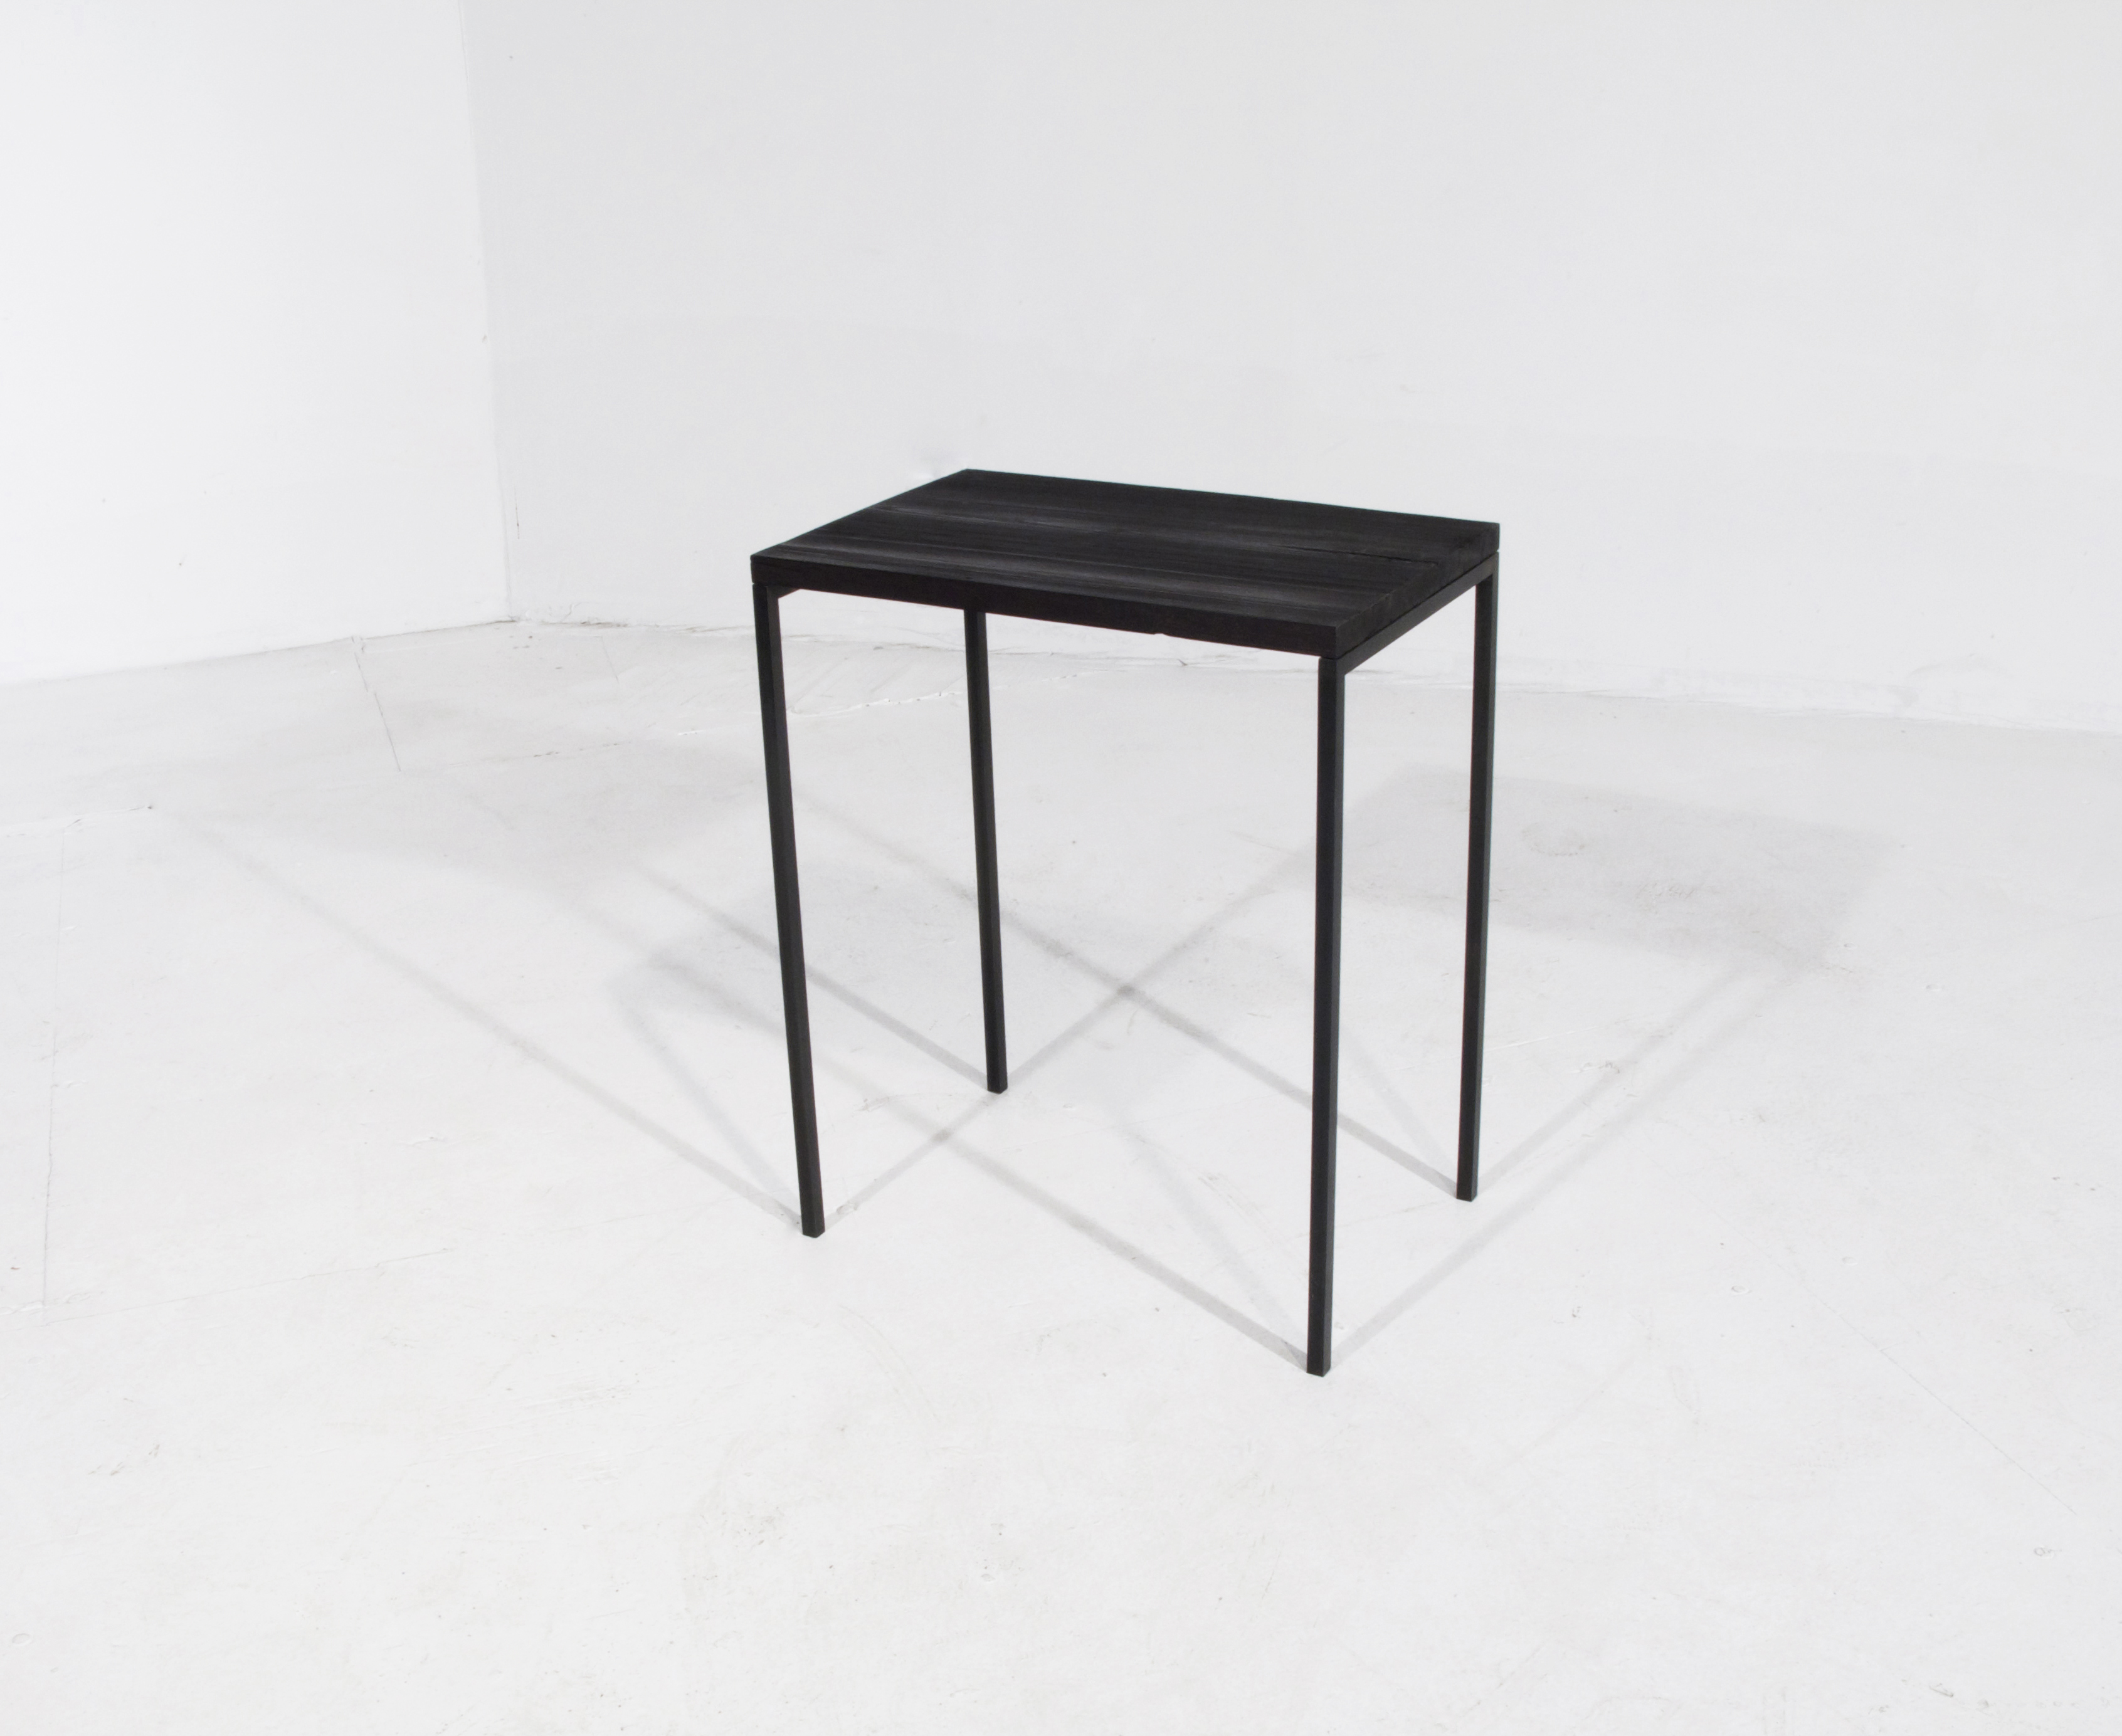 Stik leg table285.web.jpg